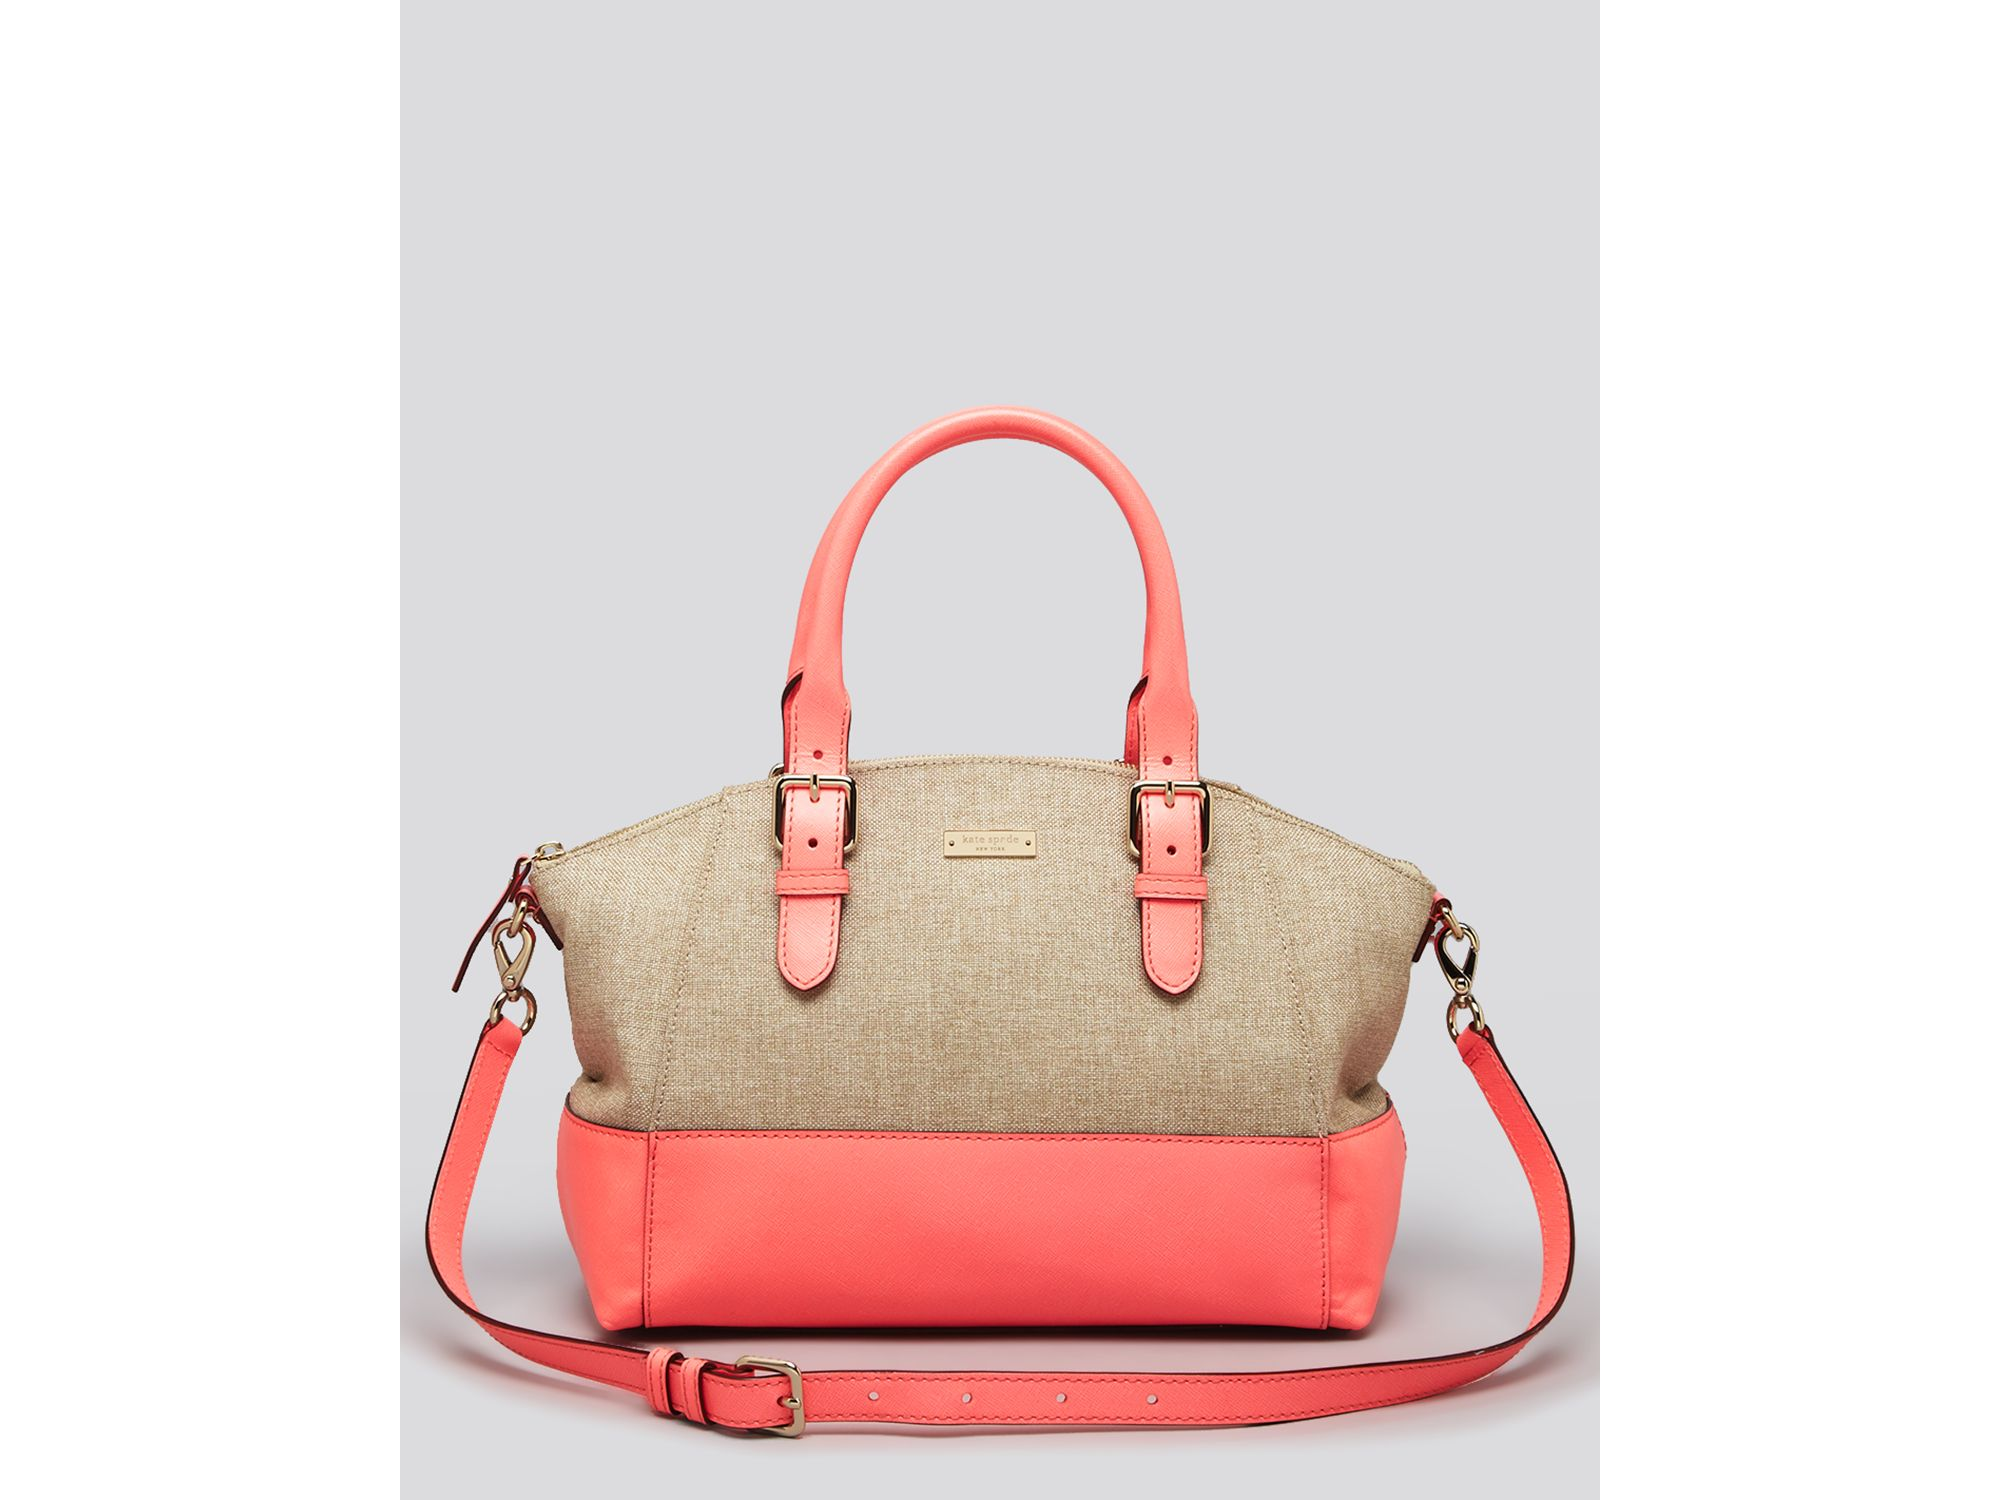 Lyst - Kate Spade Satchel Charlotte Street Fabric Small Sloan in Orange 66743c6153154